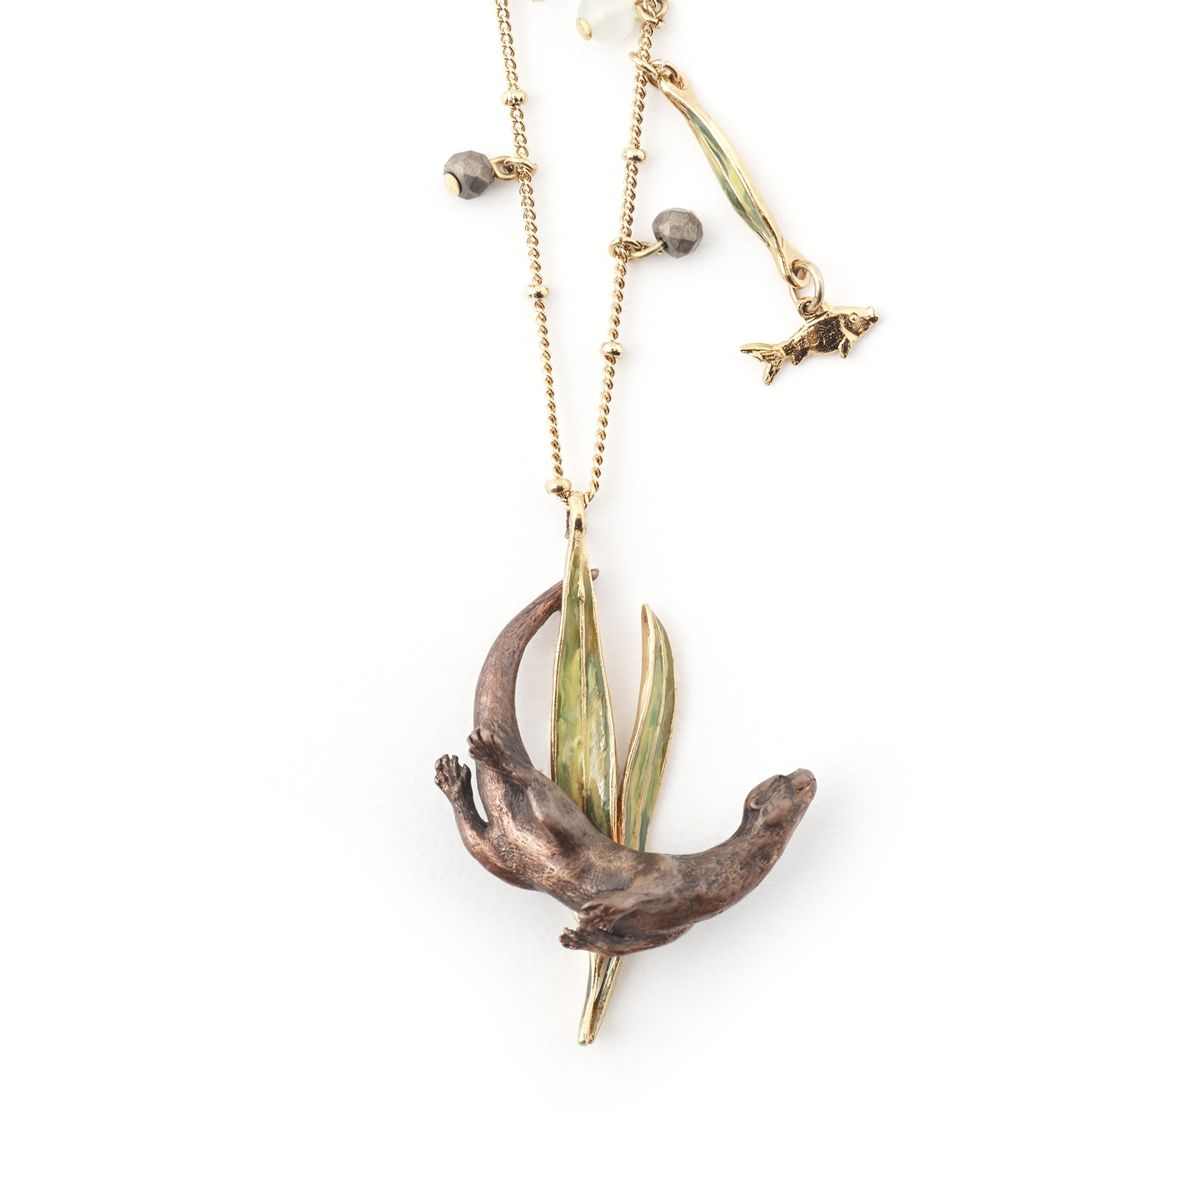 Diving otter pendant otters and pendants diving otter pendant aloadofball Image collections